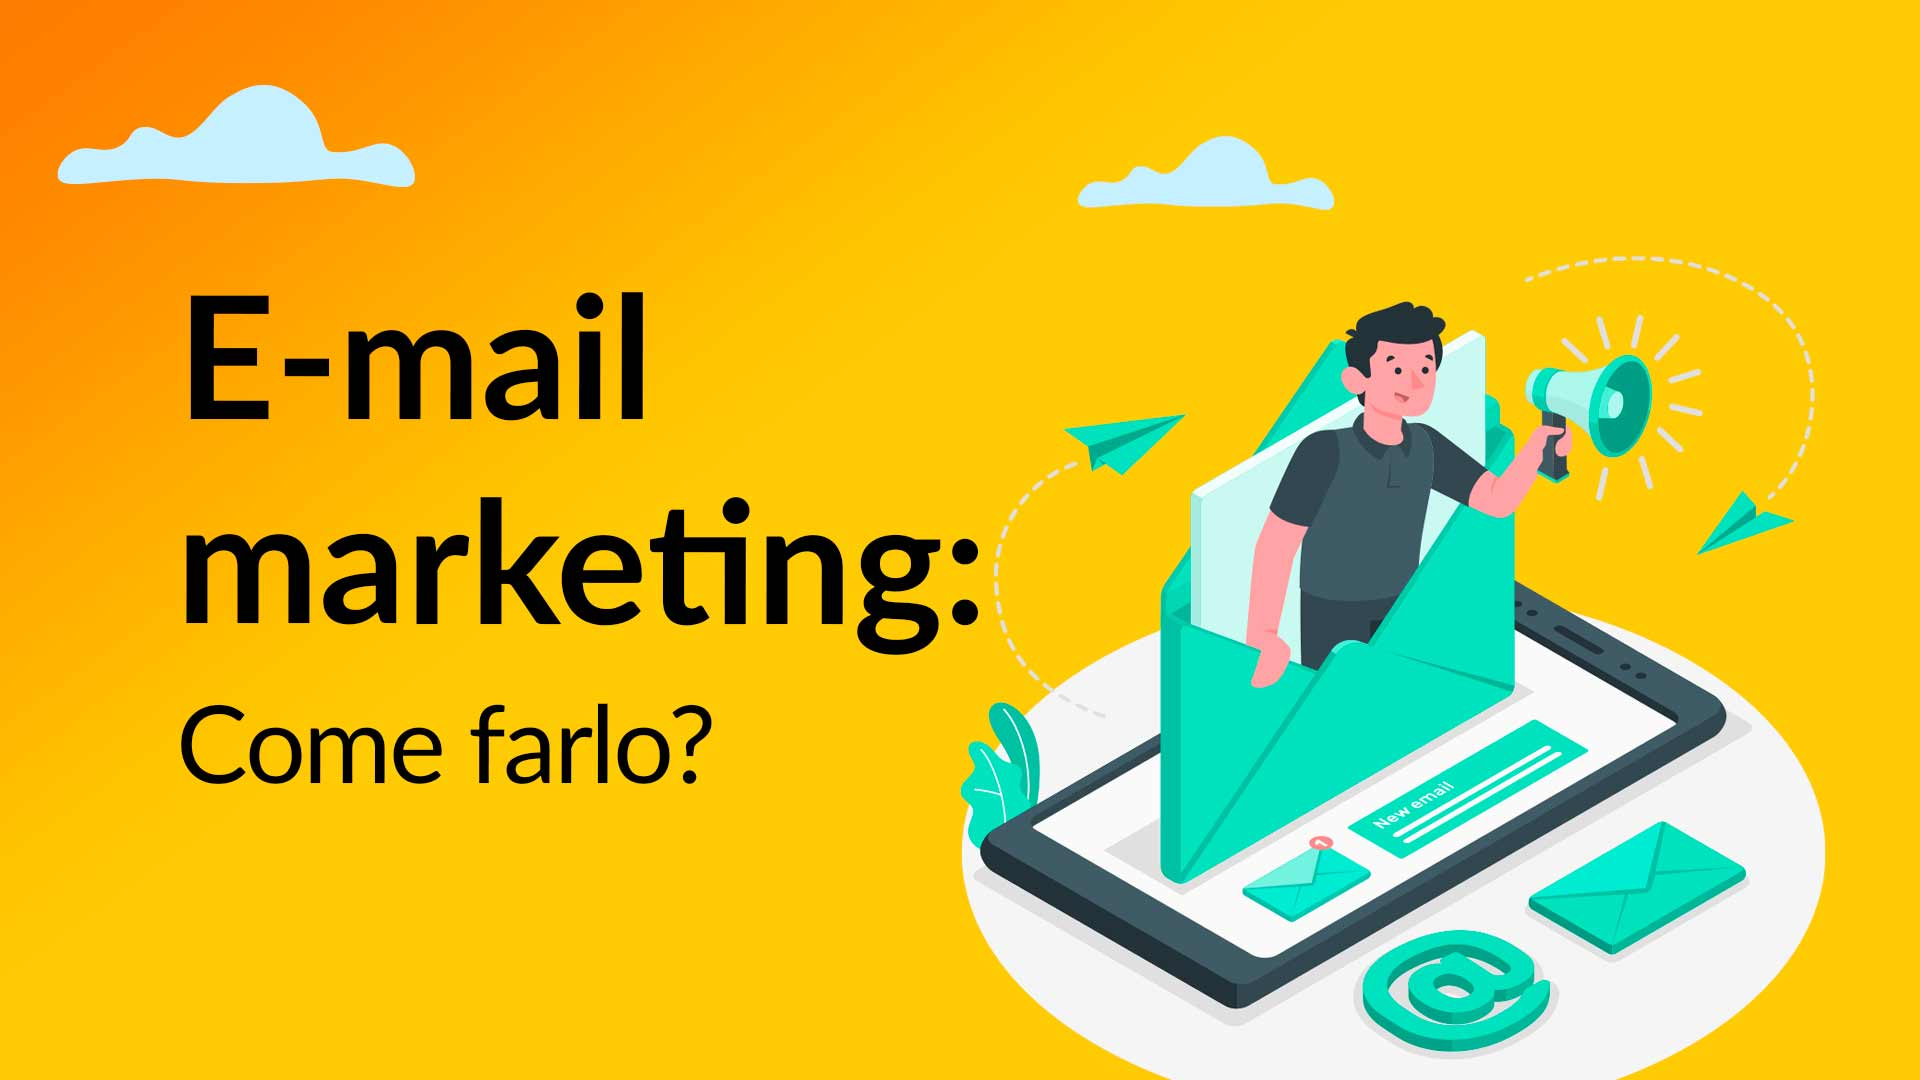 Come fare e-mail marketing